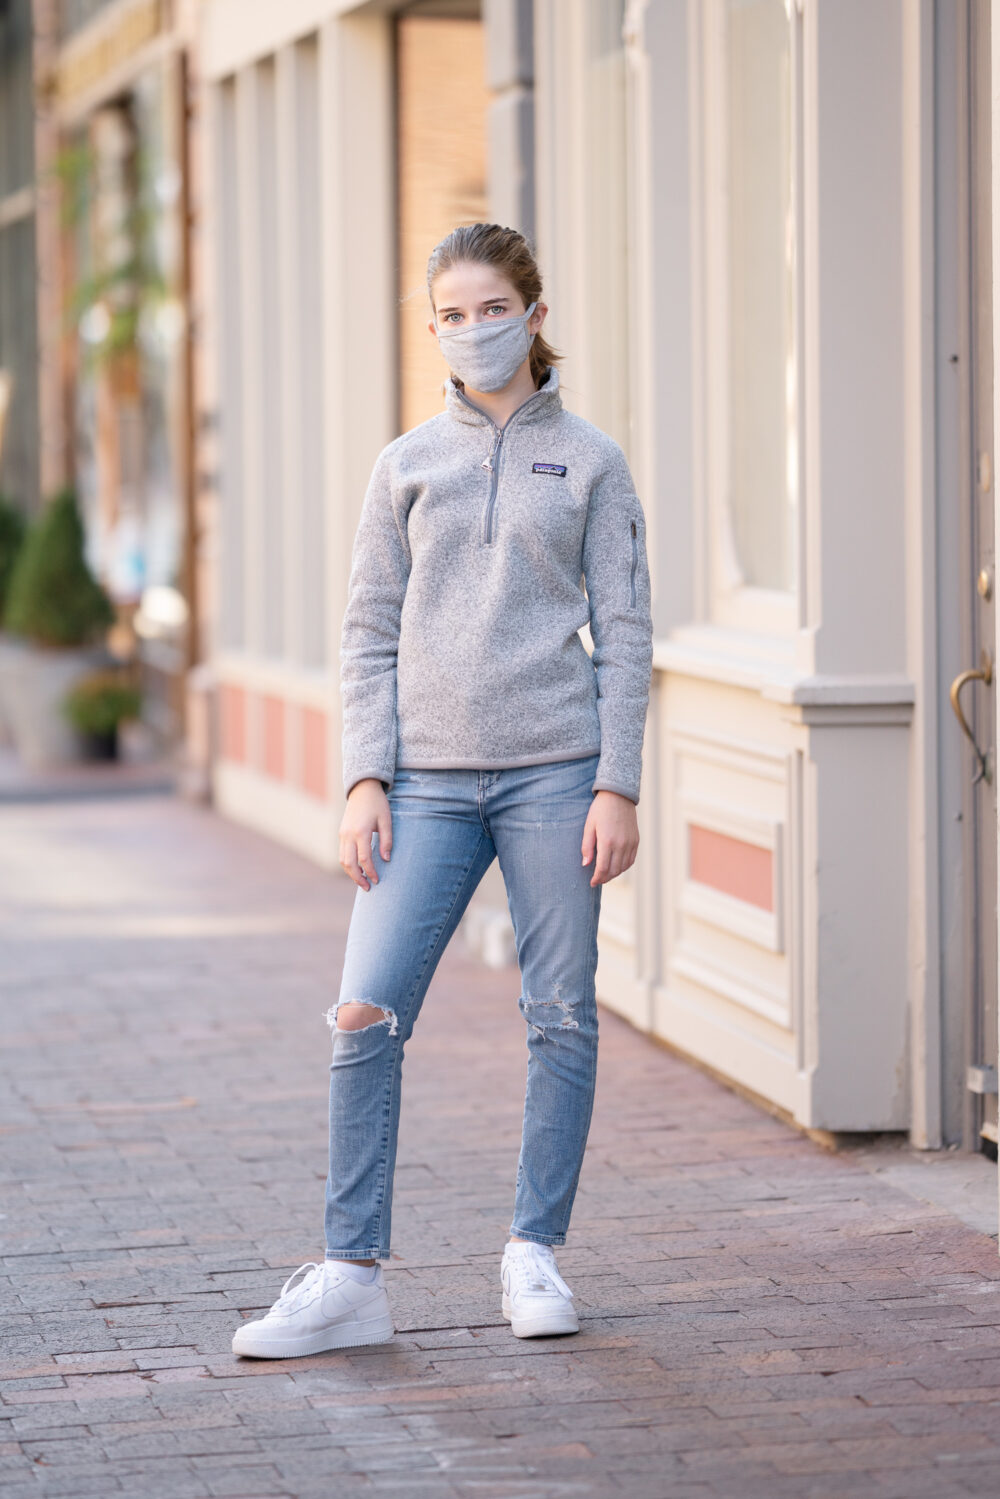 Petite Fashion Blog | Spread Hope not COVID-19 | Why you should wear a mask